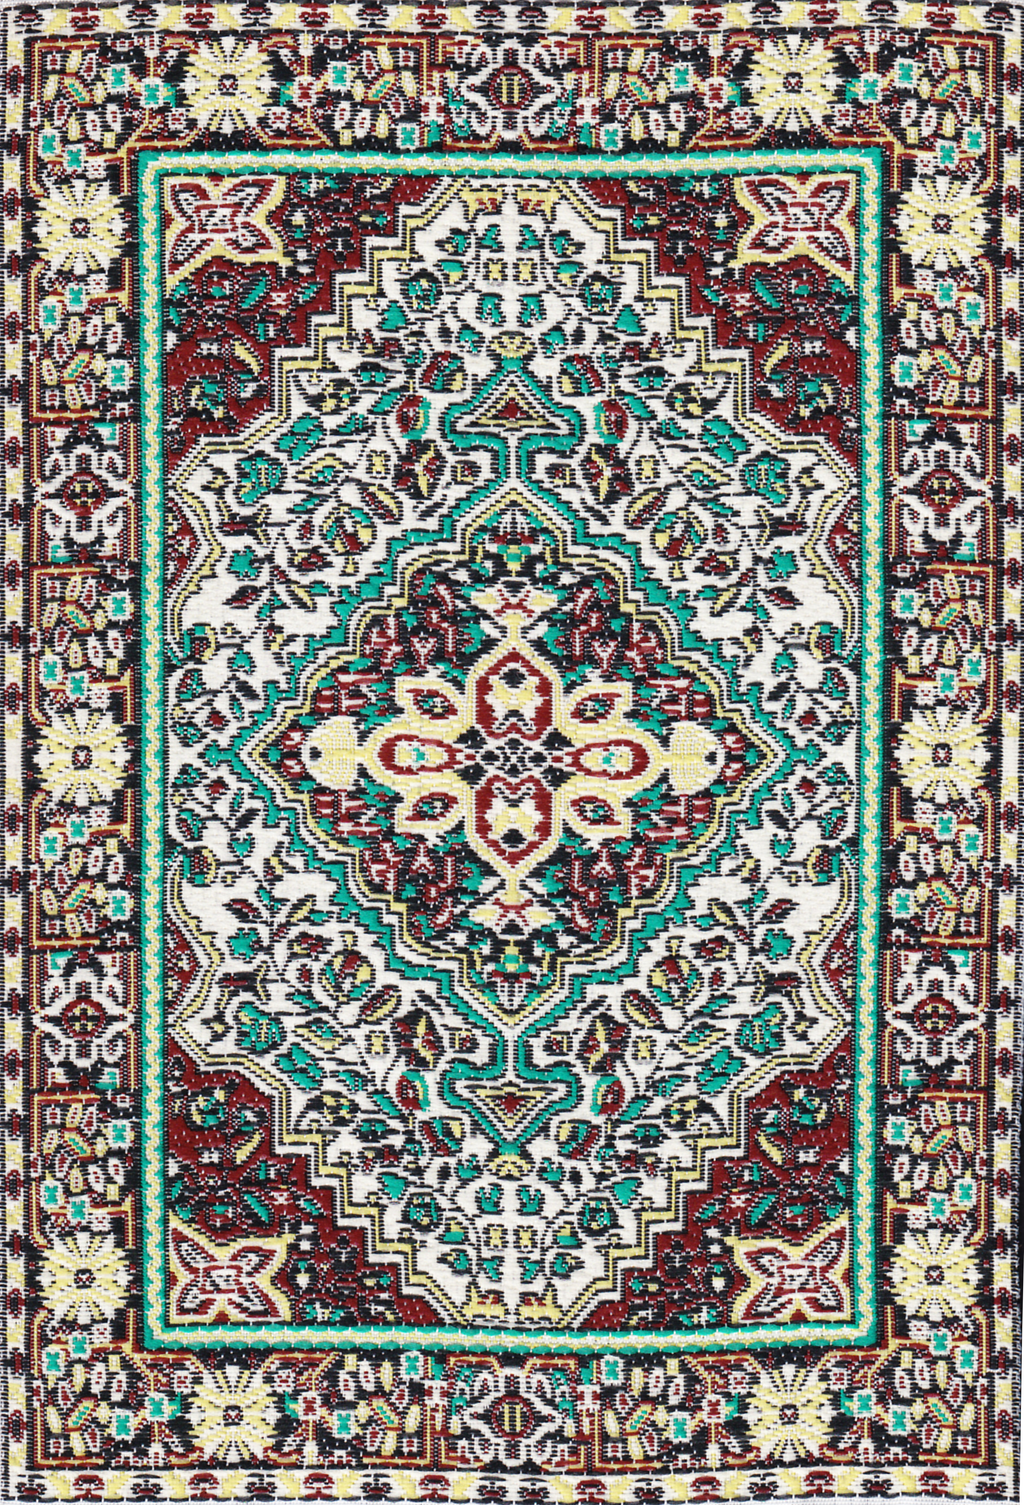 Turkish Carpet 4 by Siobhan68